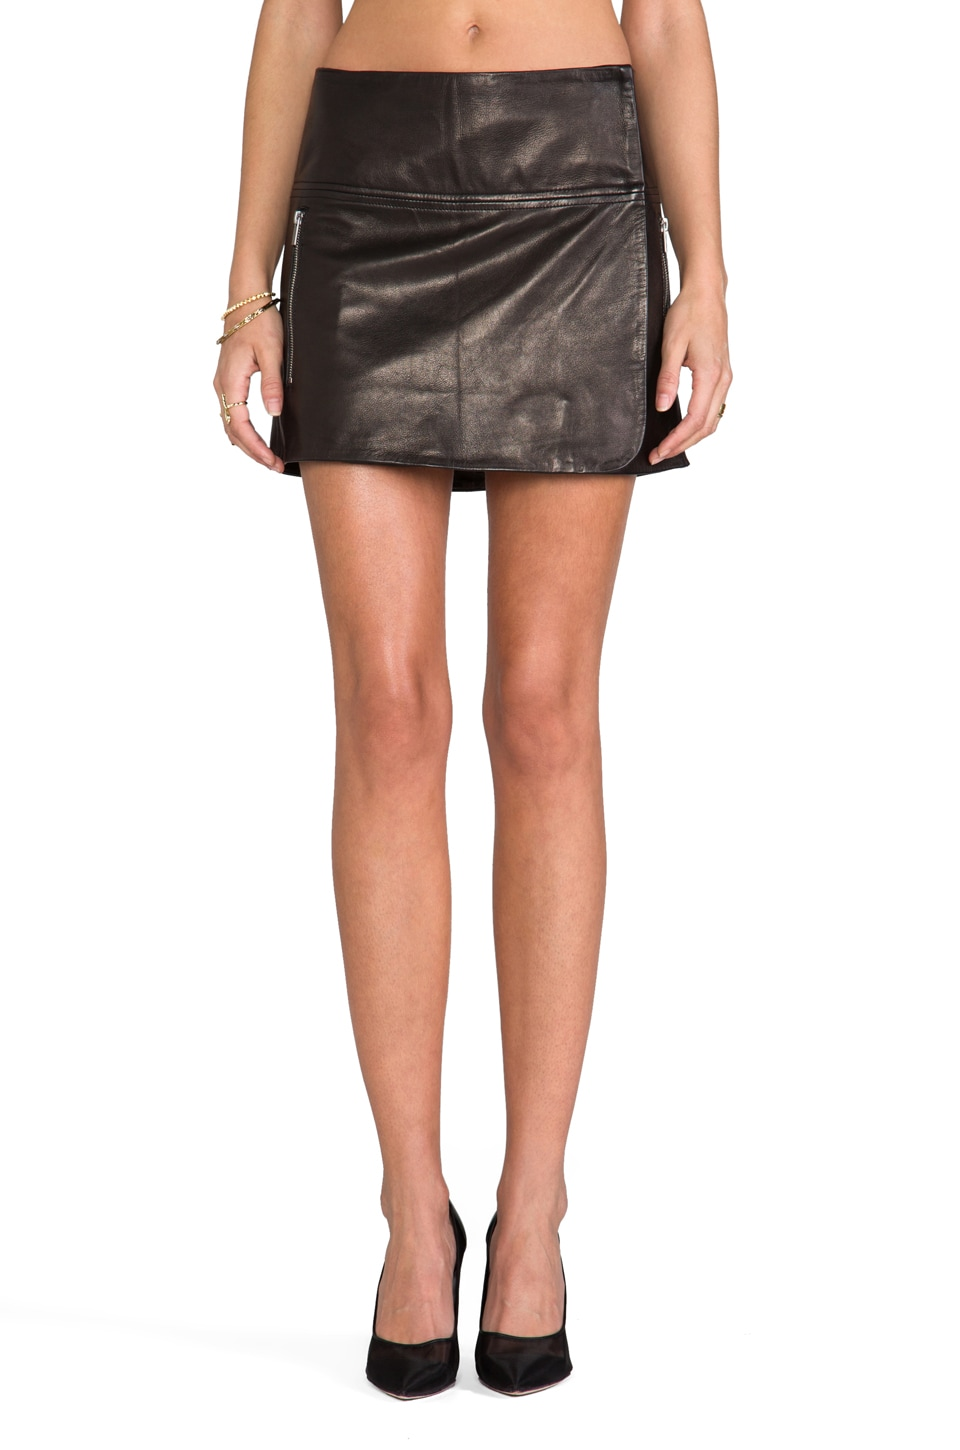 Diane von Furstenberg Liam Skirt in Black